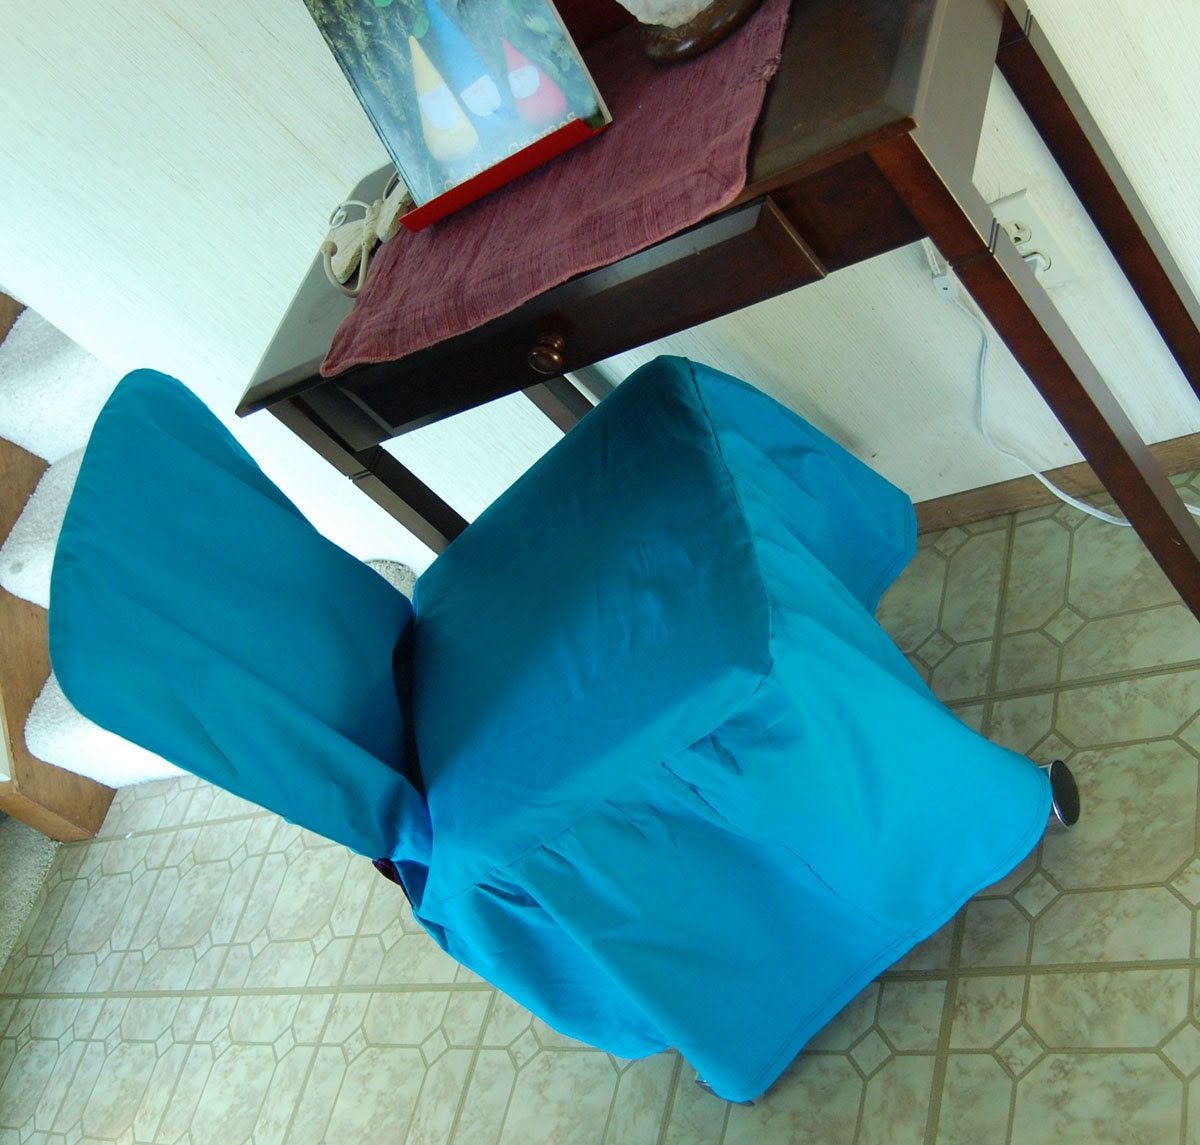 Popular items for desk chair cover on Etsy